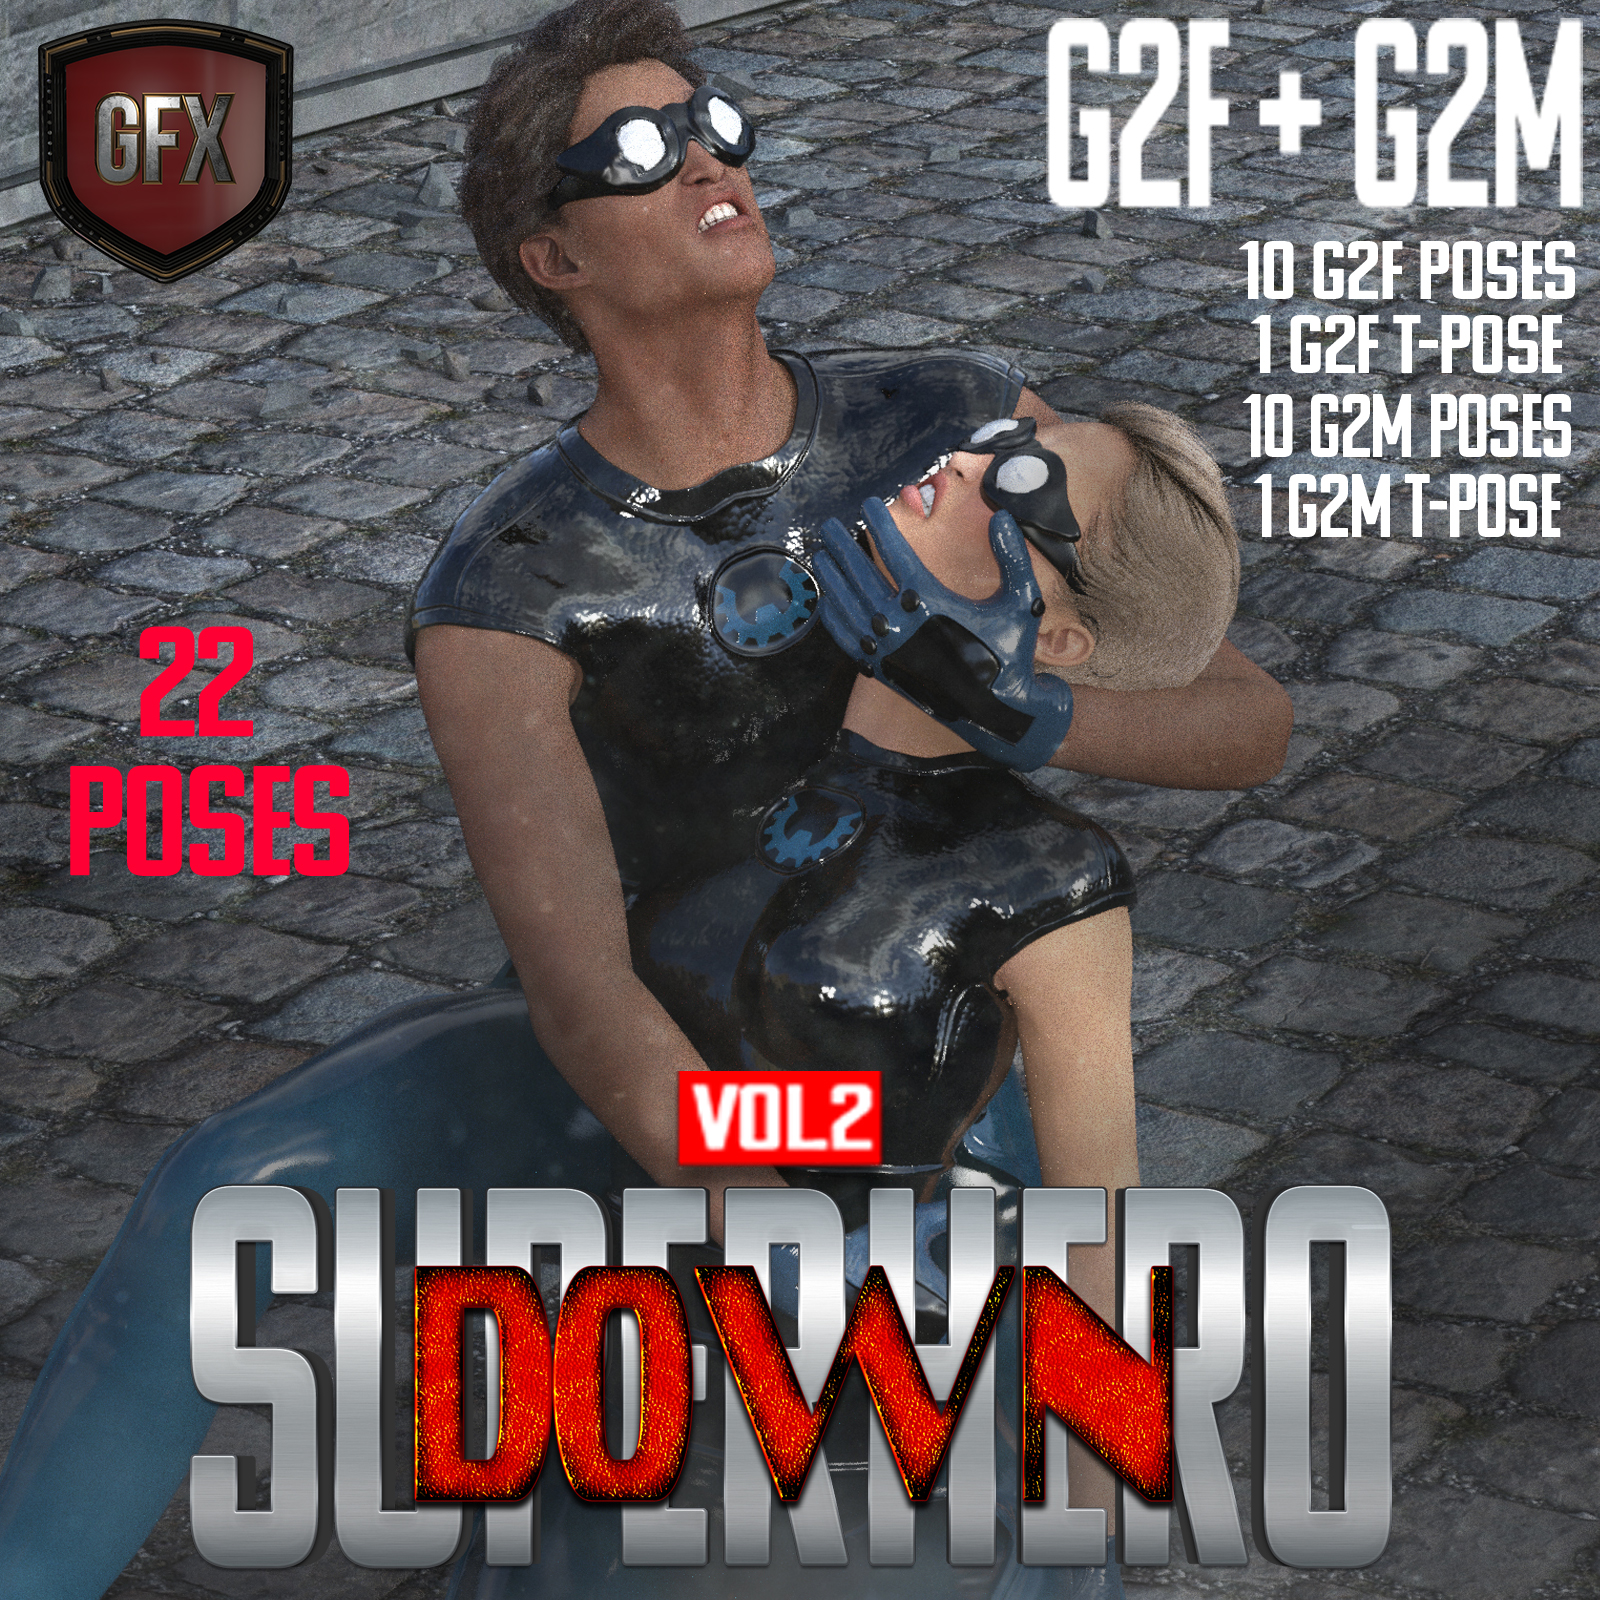 SuperHero Down for G2F and G2M Volume 2